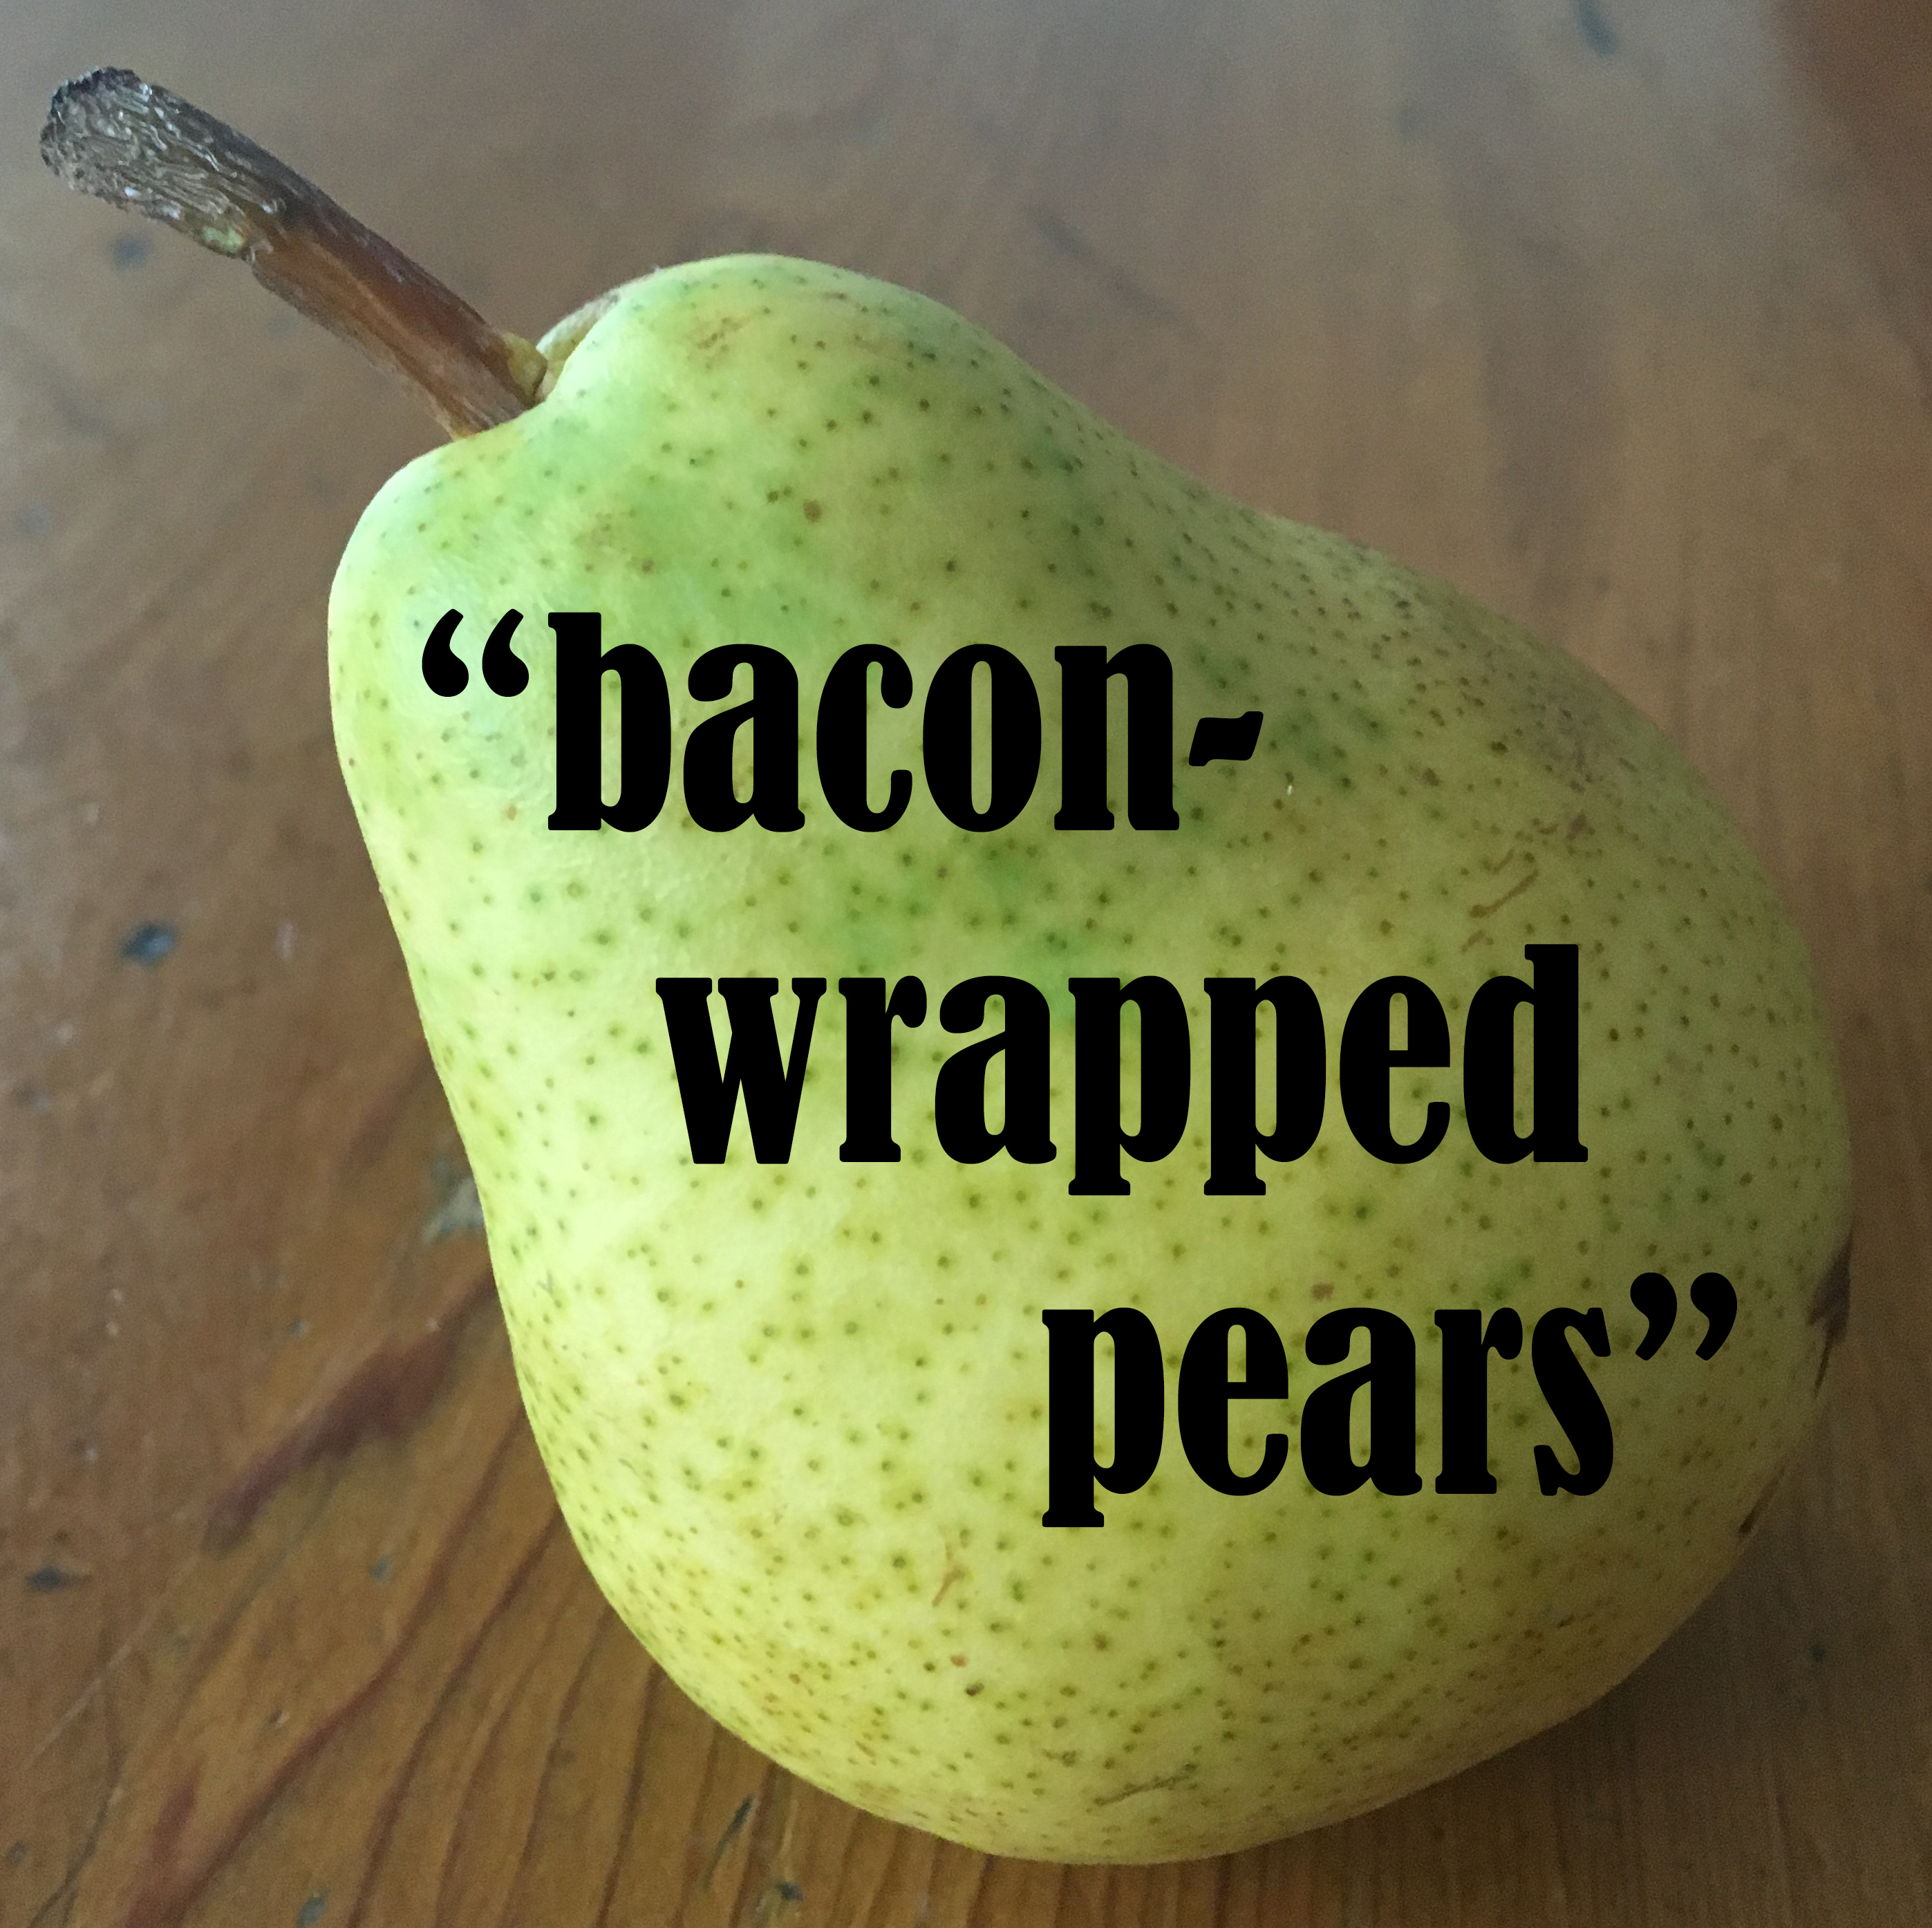 baconwrapped pears copy